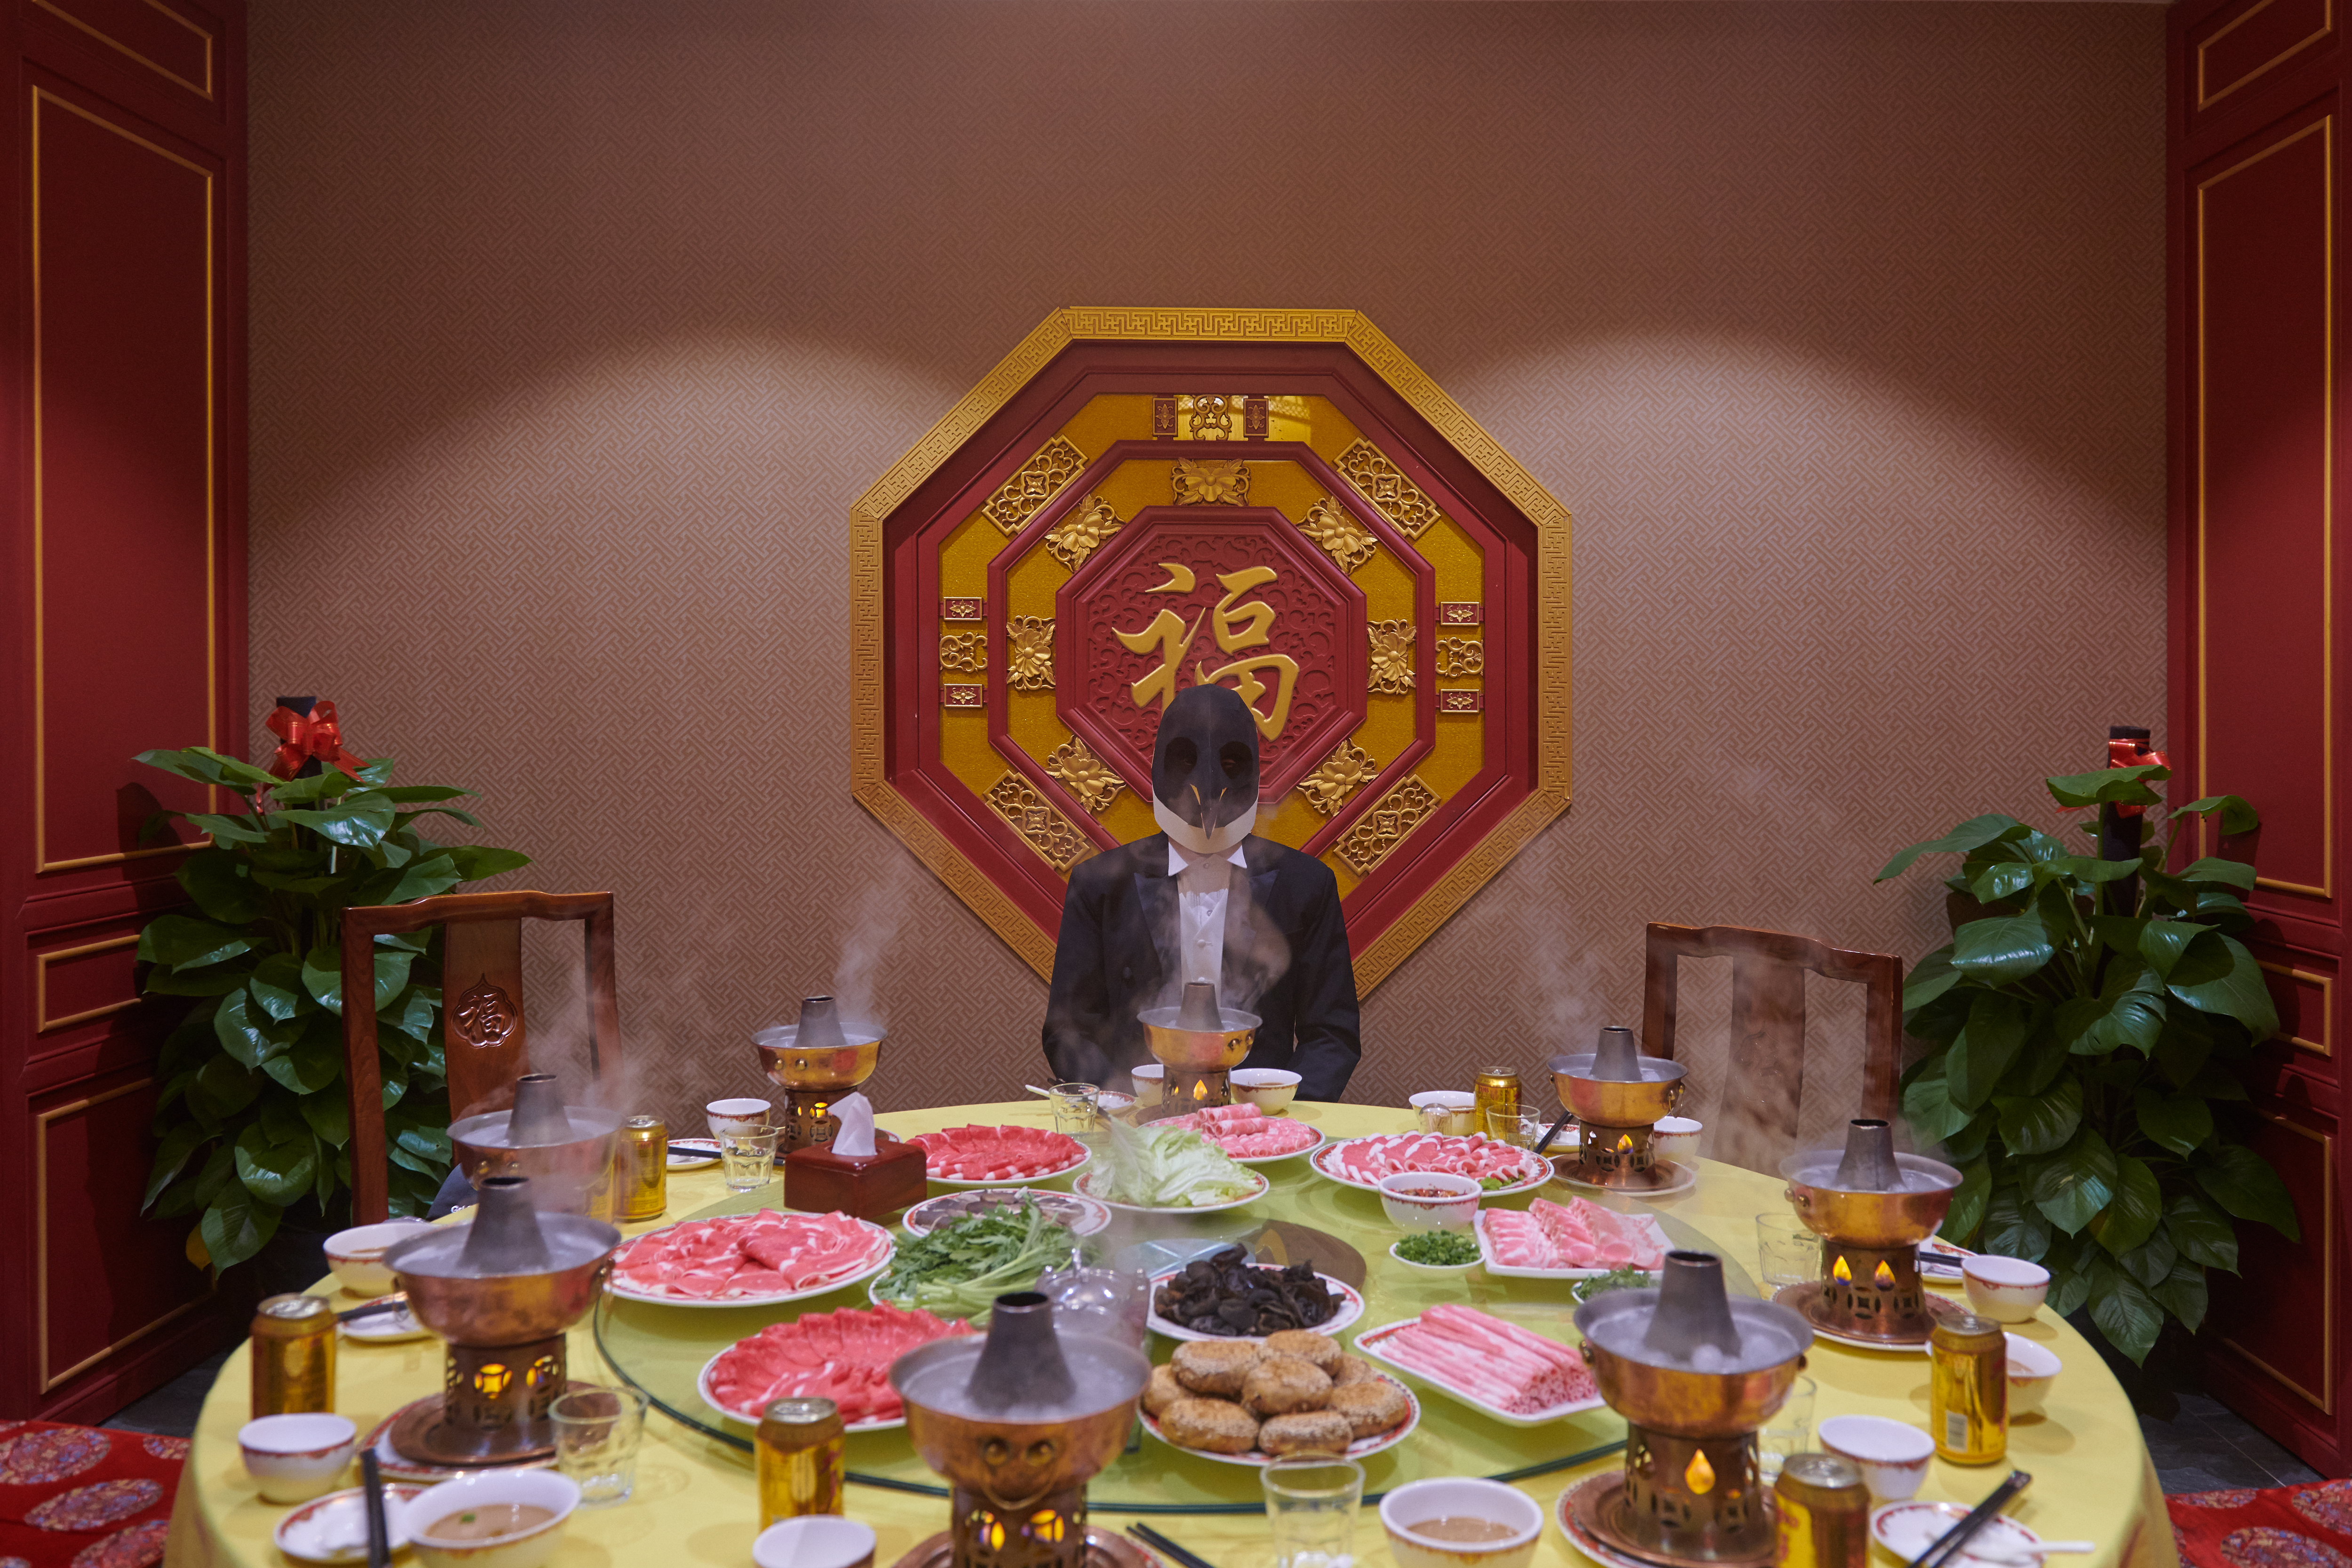 Taking guests for a nice meal, like Beijing hotpot, is a basic gesture of hospitality.